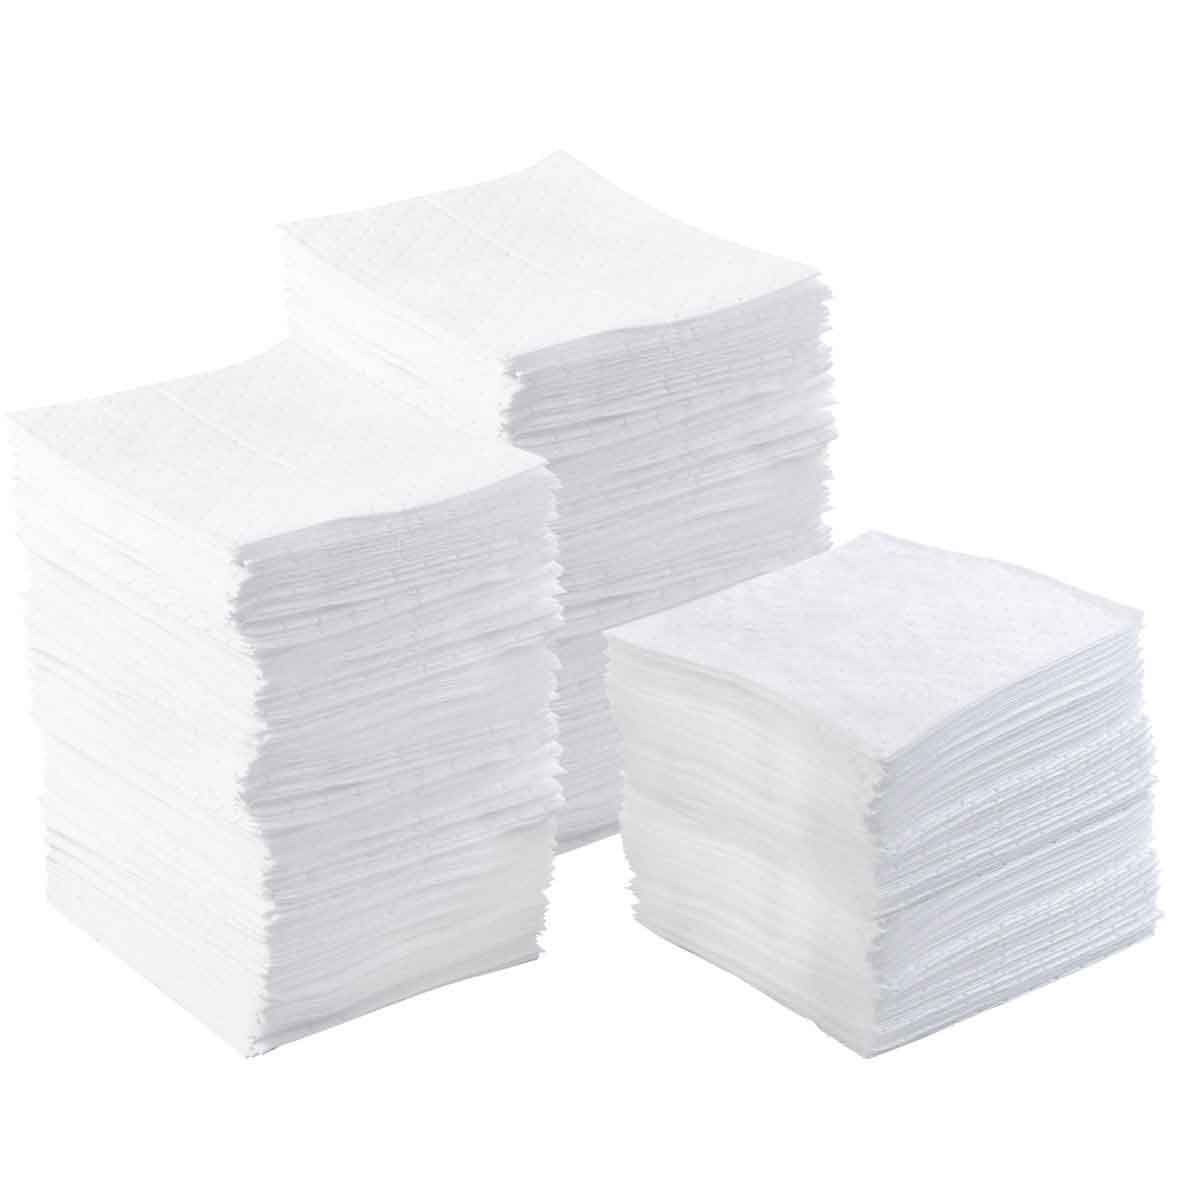 SPC® BASIC® BPO200 Lightweight Perforated Absorbent Pad, 17 in L x 15 in W x 1 ply THK, 34 gal Absorption, Meltblown Polypropylene